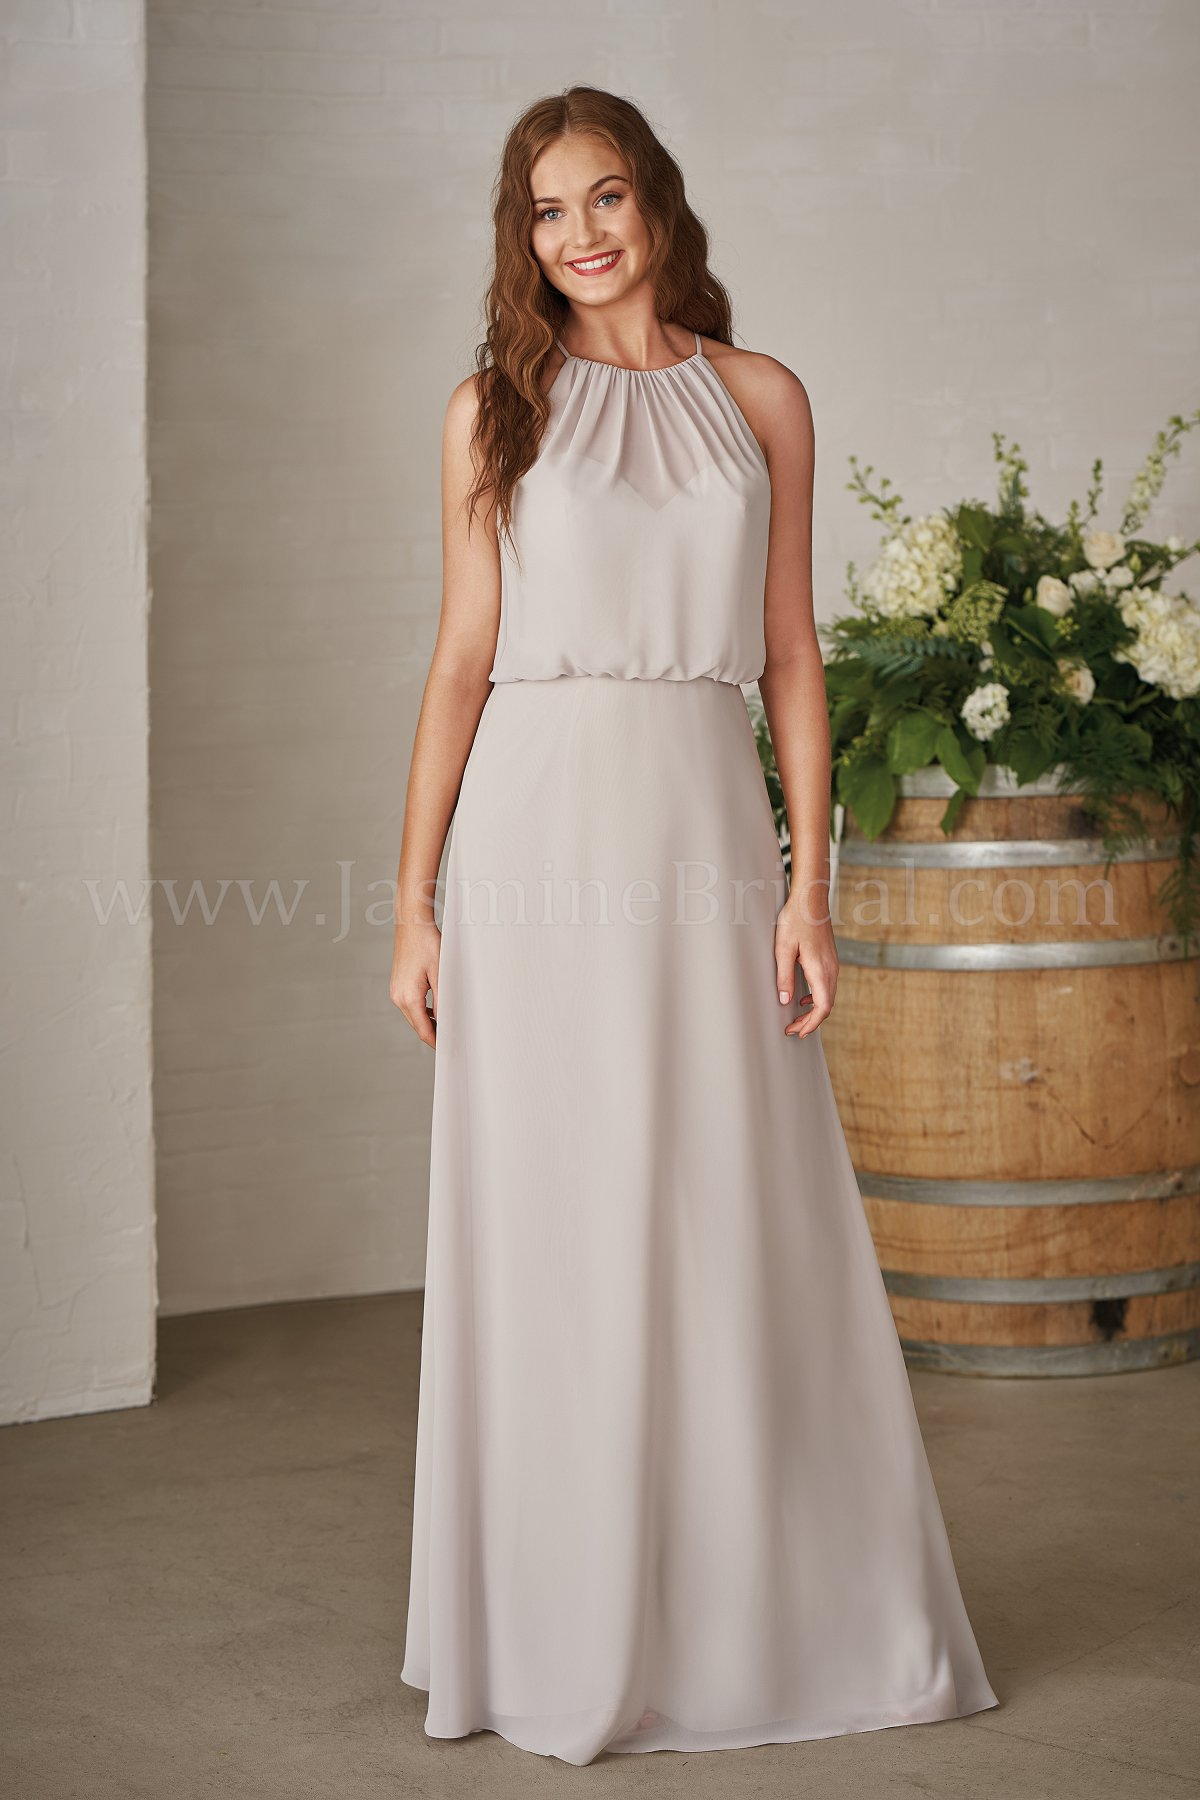 bridesmaid-dresses-P206003-F.jpg